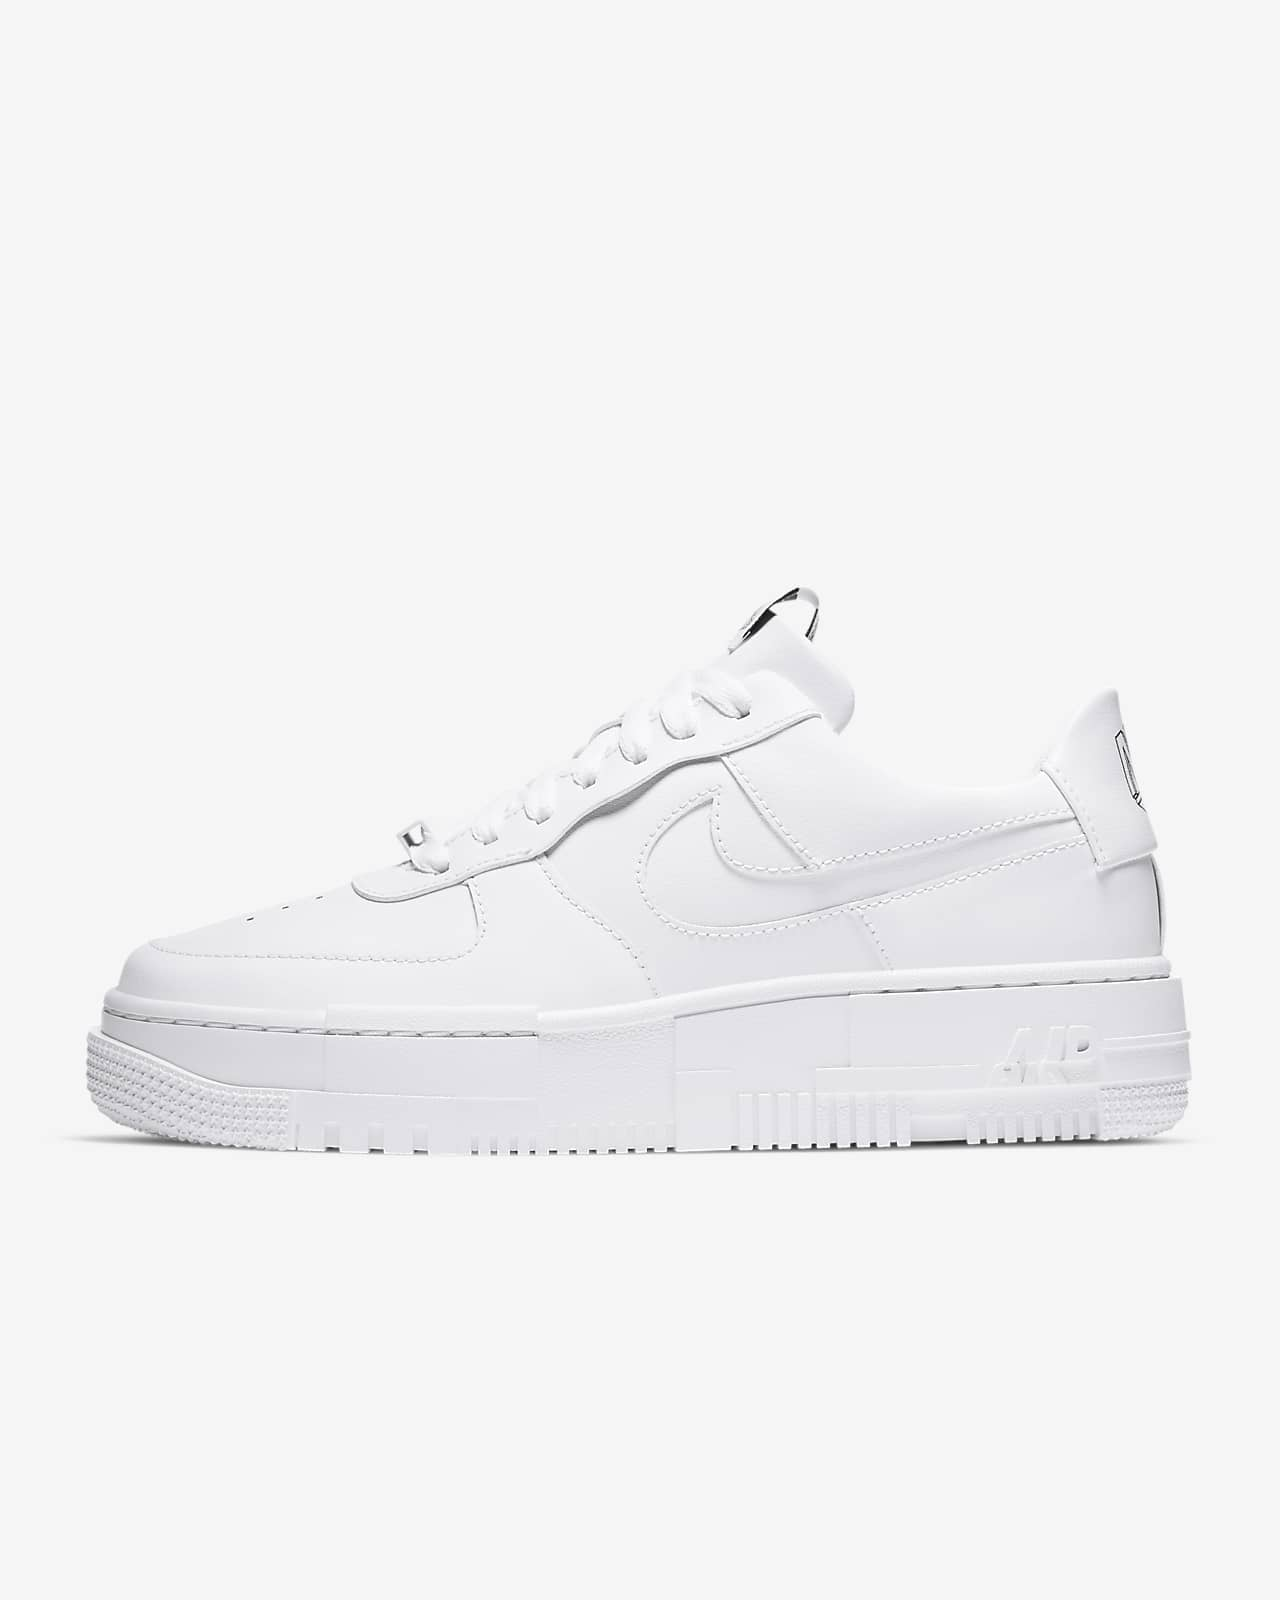 Chaussure Nike Air Force 1 Pixel pour Femme. Nike FR